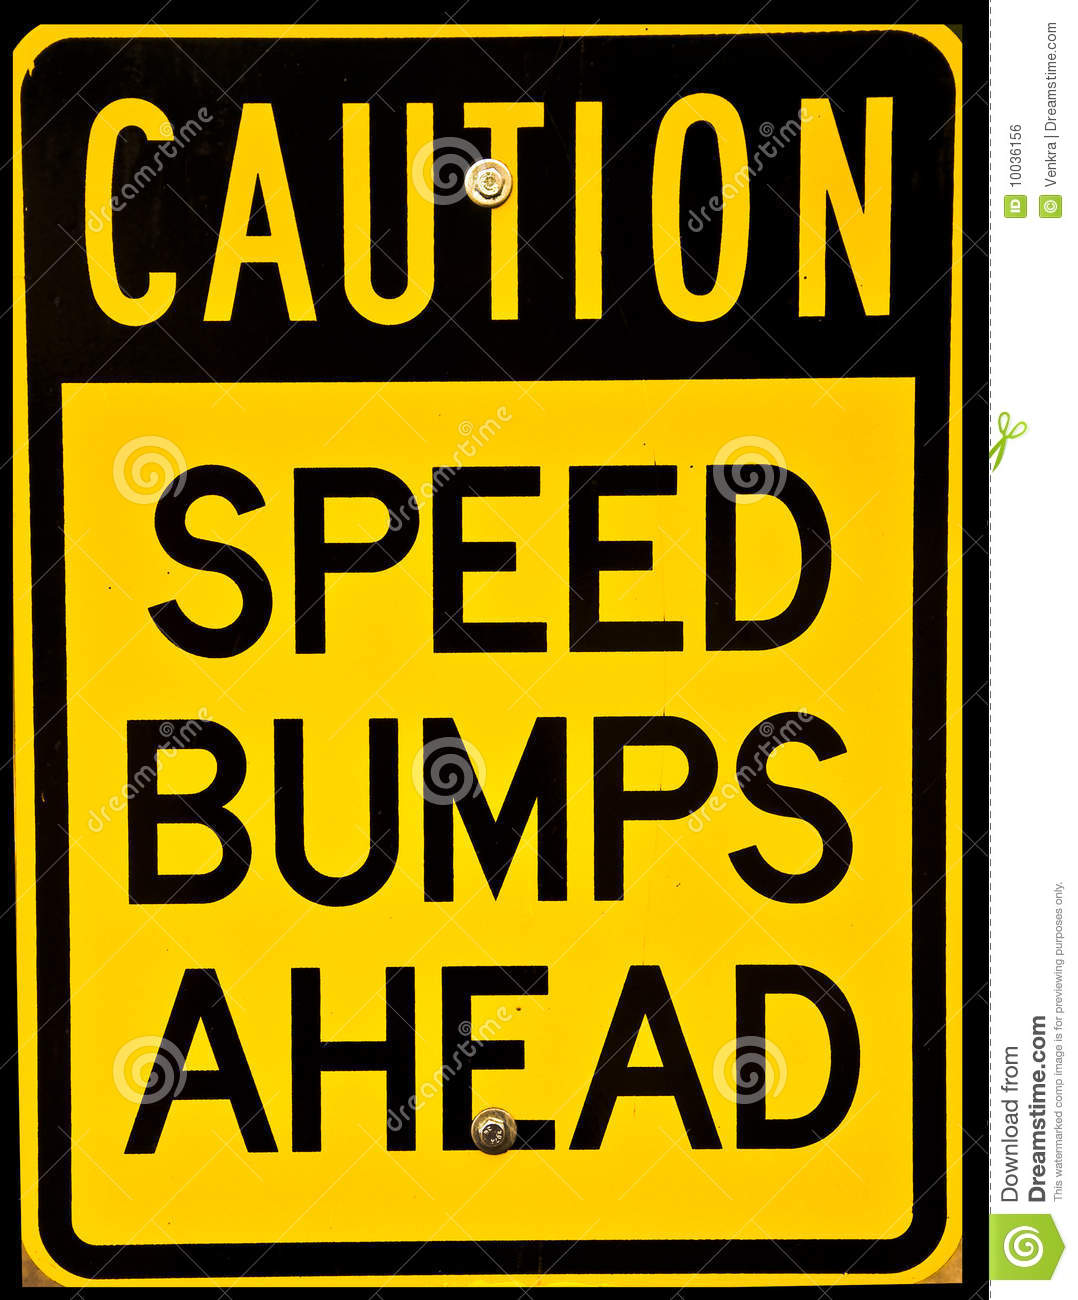 Car driving speed bump clipart picture black and white library Car driving speed bump clipart - ClipartFox picture black and white library